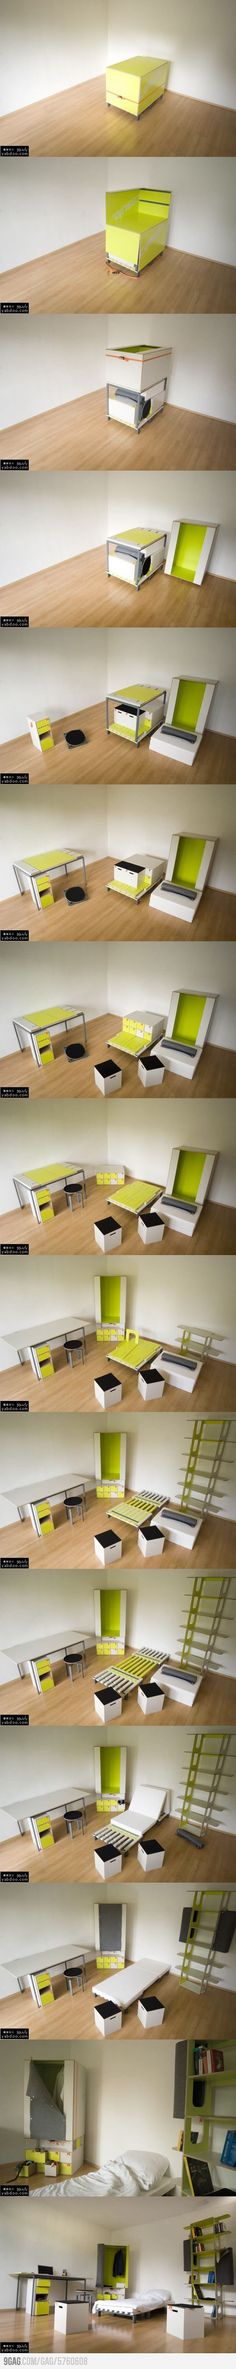 A Small Yellow Box that converts into a bedroom.